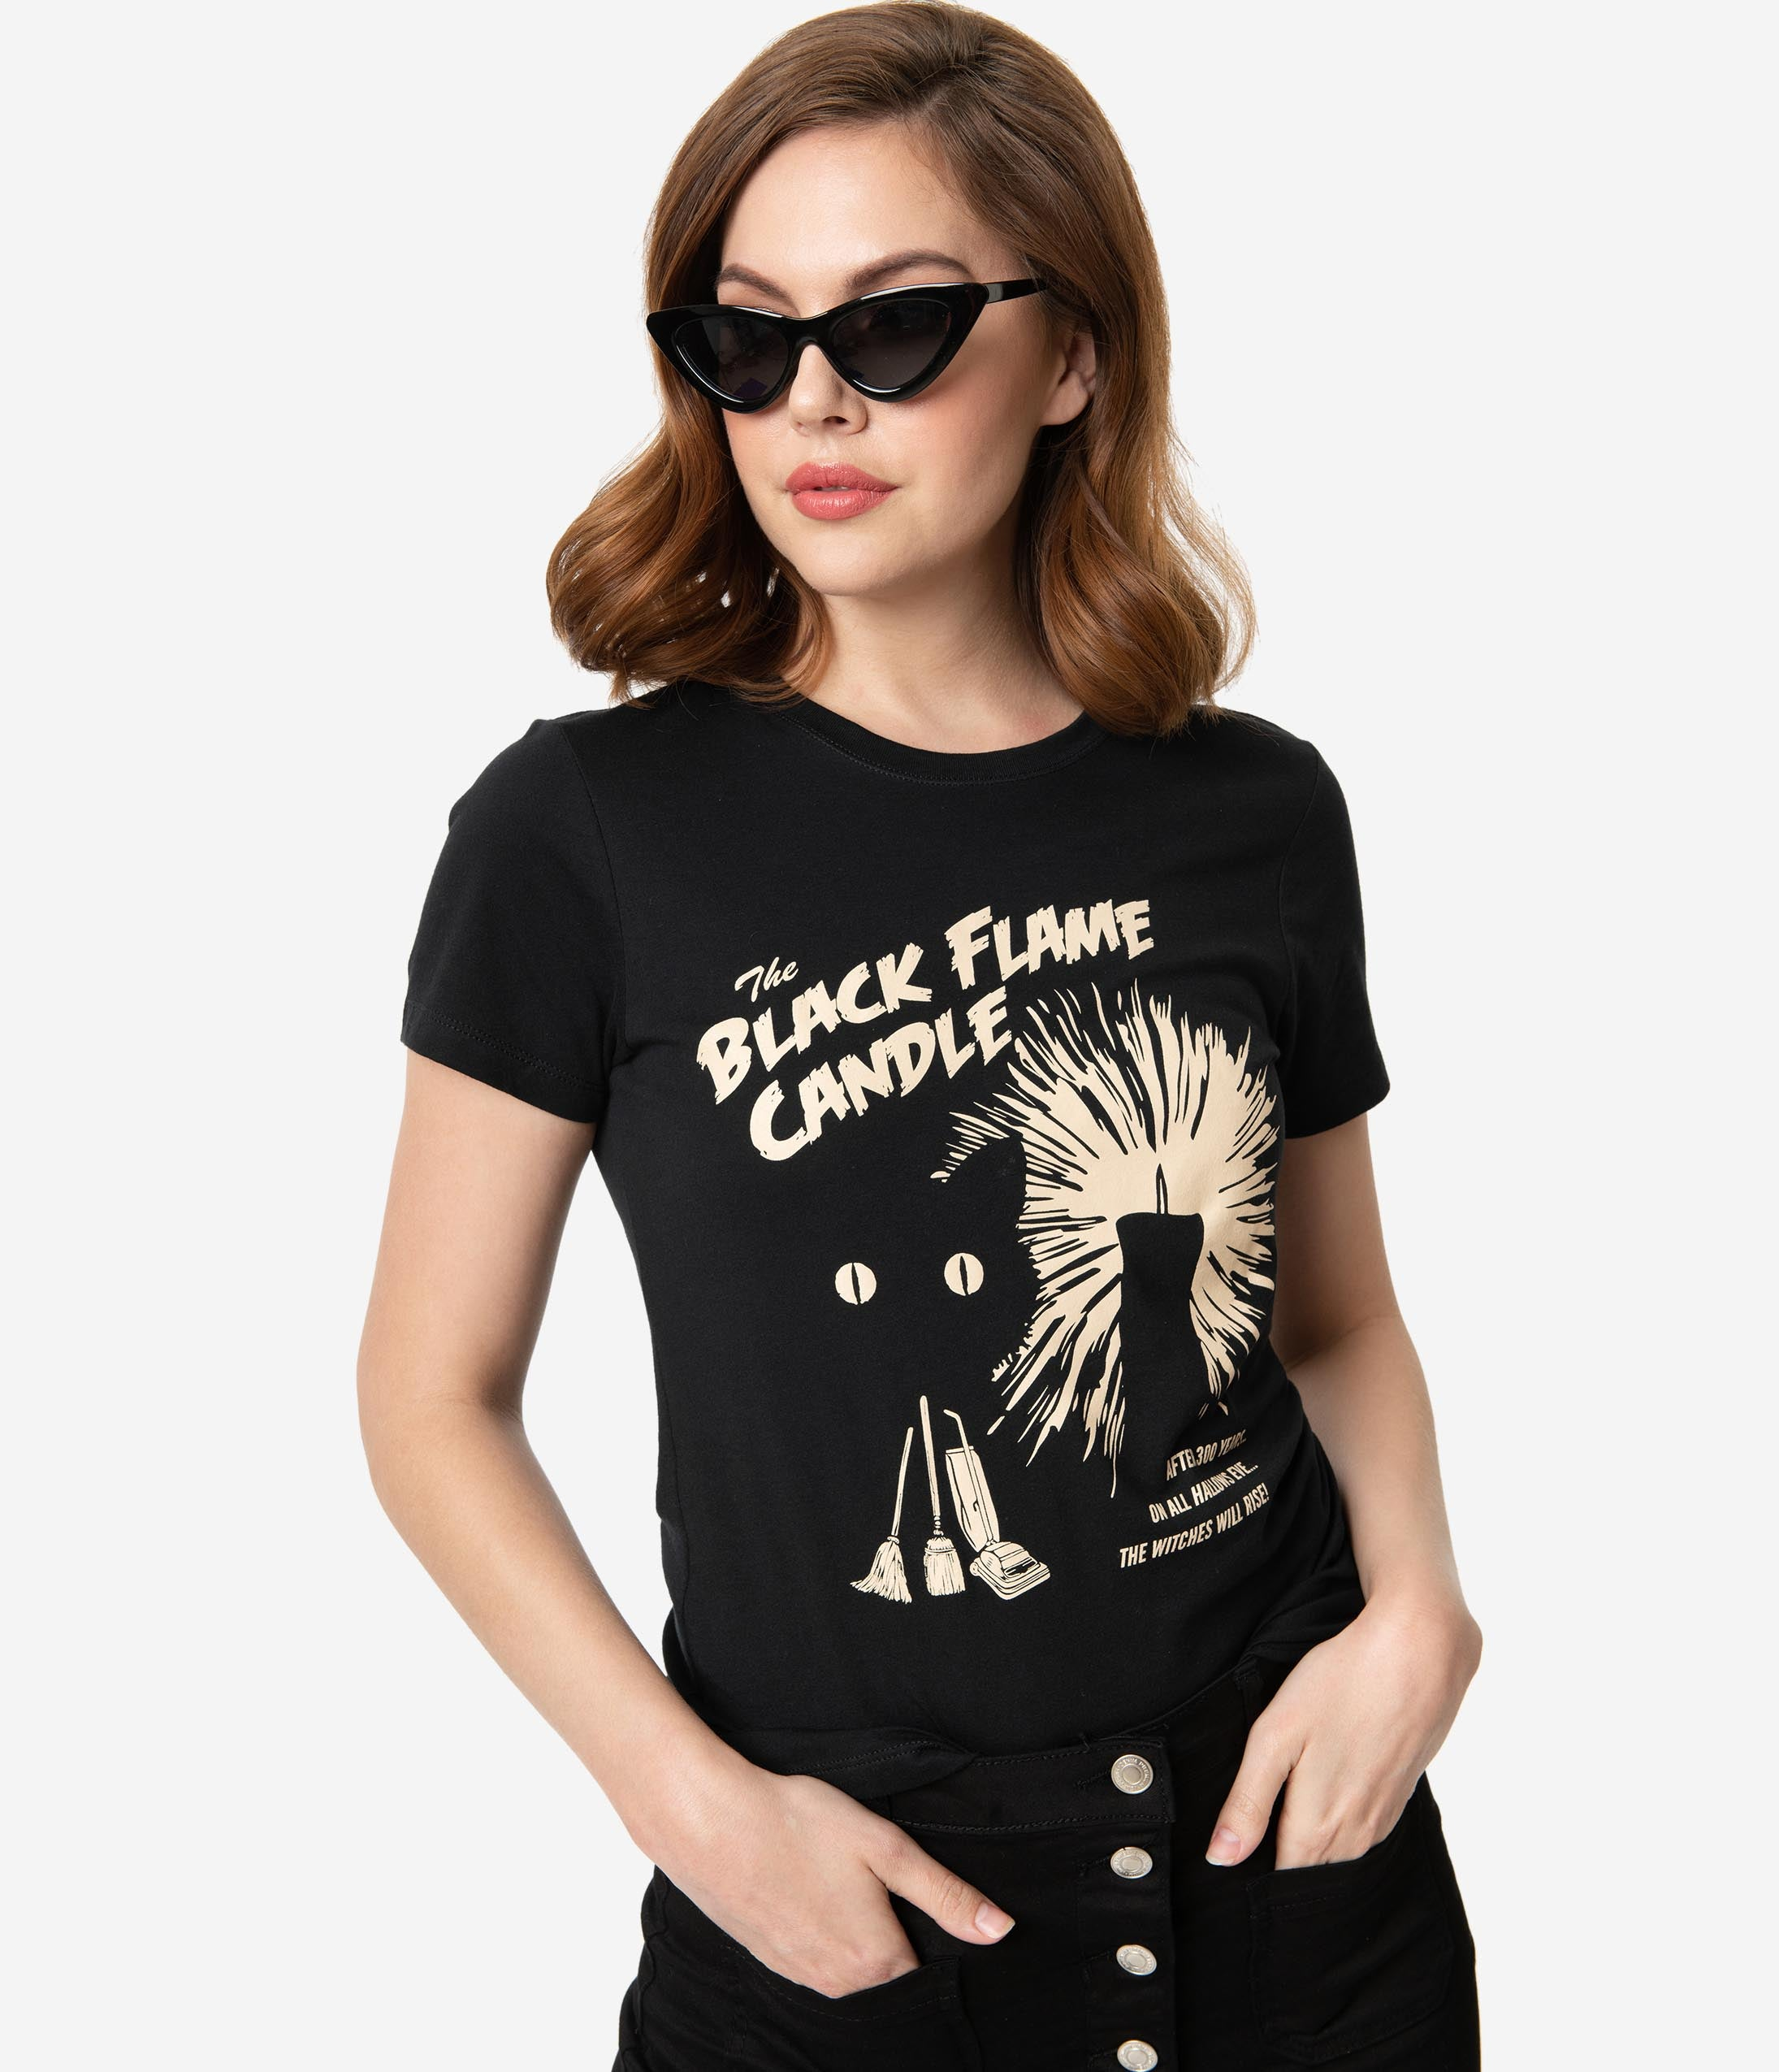 Vintage Retro Halloween Themed Clothing Whosits And Whatsits Black Flame Candle Short Sleeve Womens Tee $32.00 AT vintagedancer.com